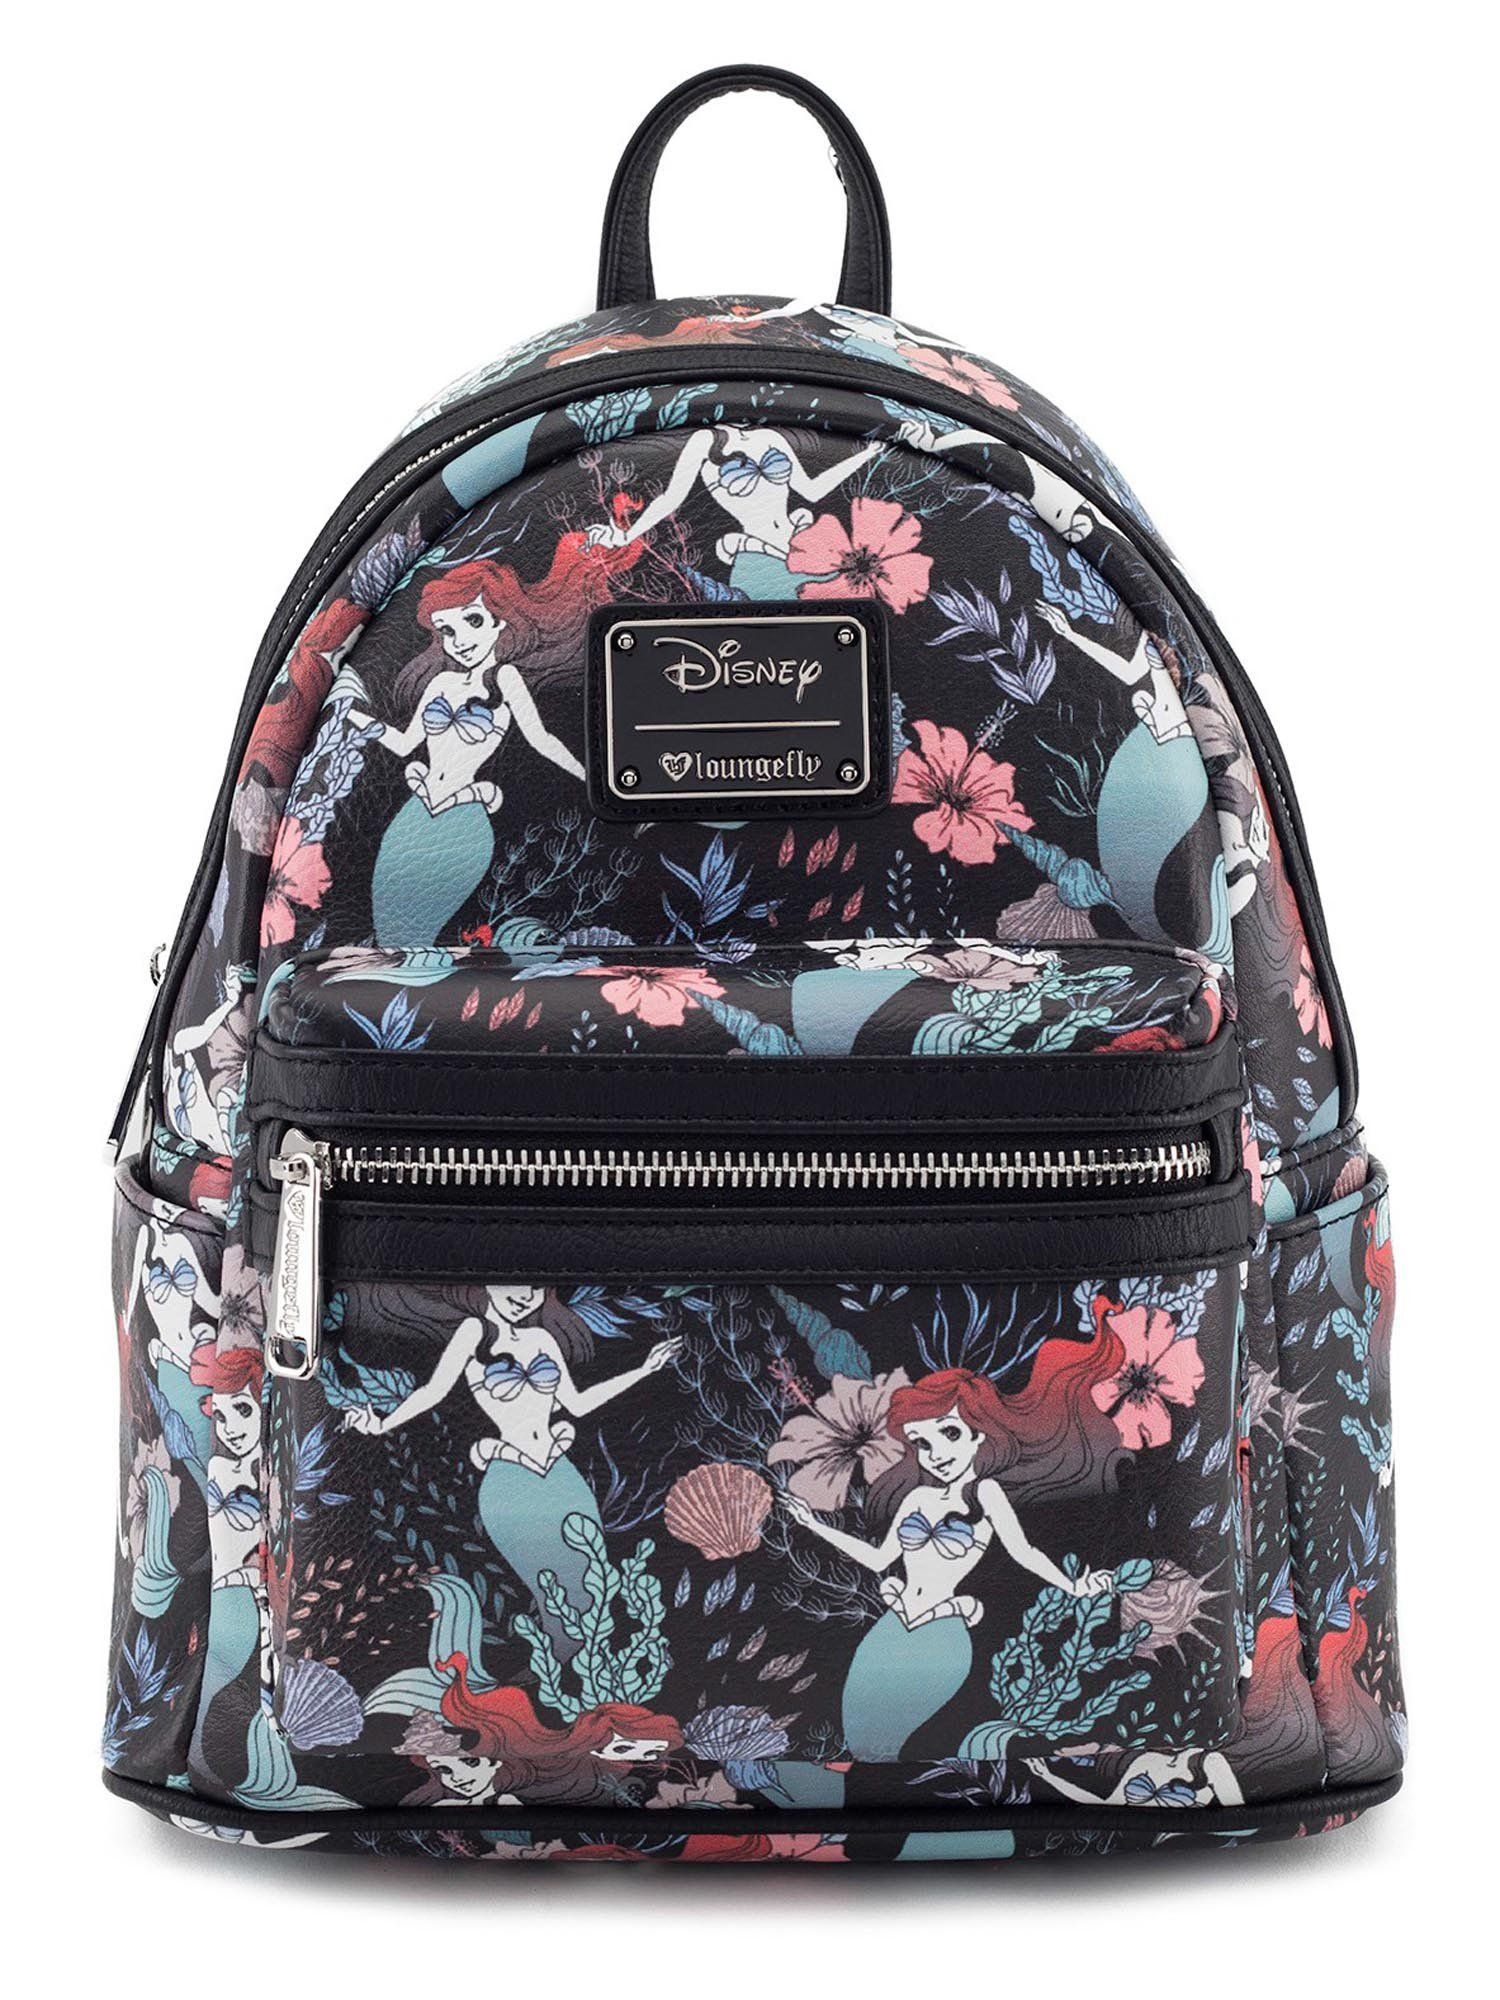 c7d39b2008 Loungefly Disney Ariel The Little Mermaid Floral Mini Backpack Purse ...